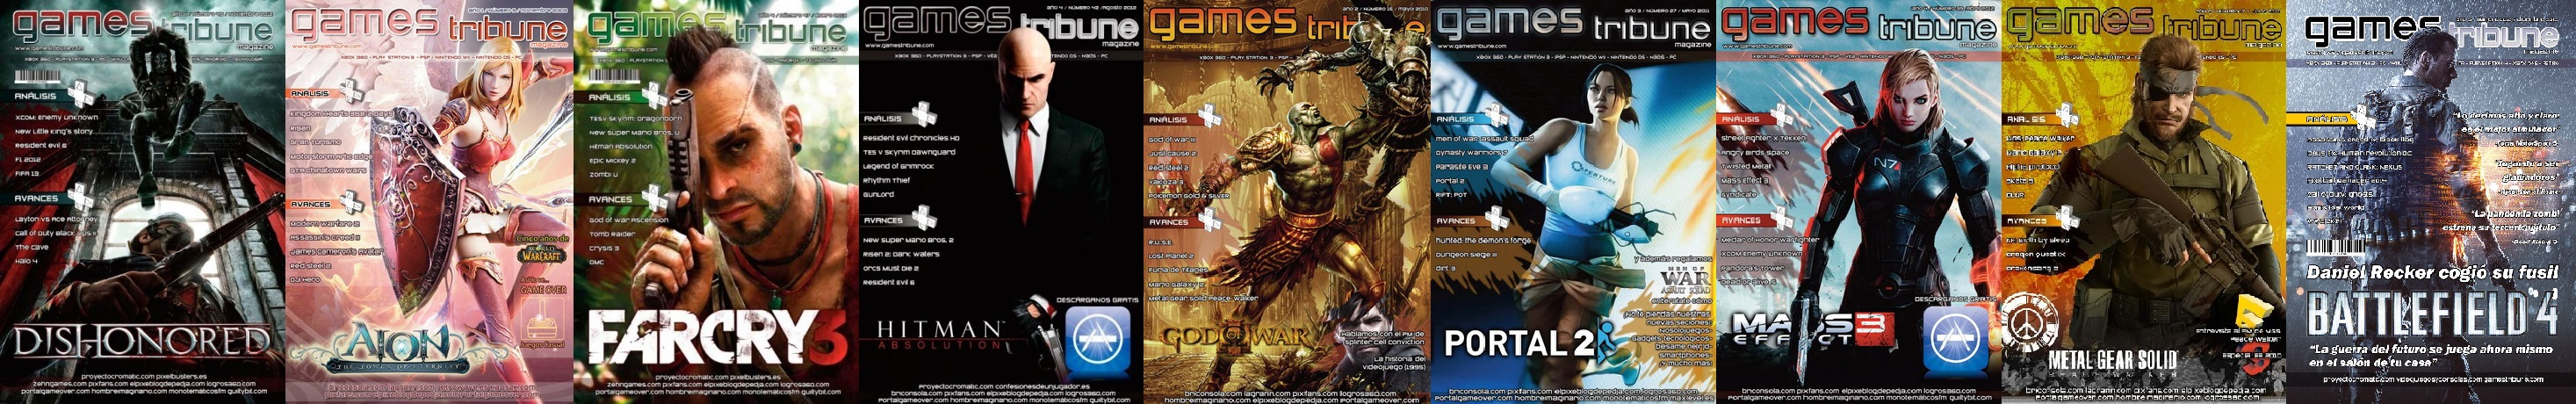 Gamestribune old covers